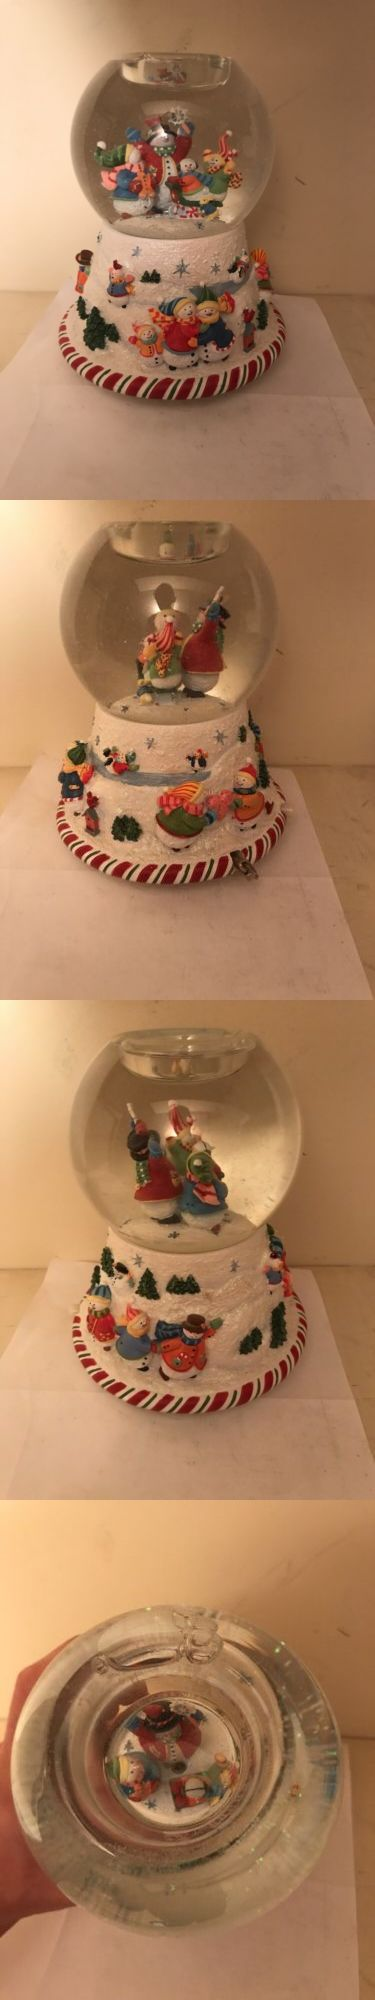 Candles and Candle Accessories 168138: New Partylite Peppermint Pals Tealight Snow Globe Snowman Plays Music -> BUY IT NOW ONLY: $30 on eBay!